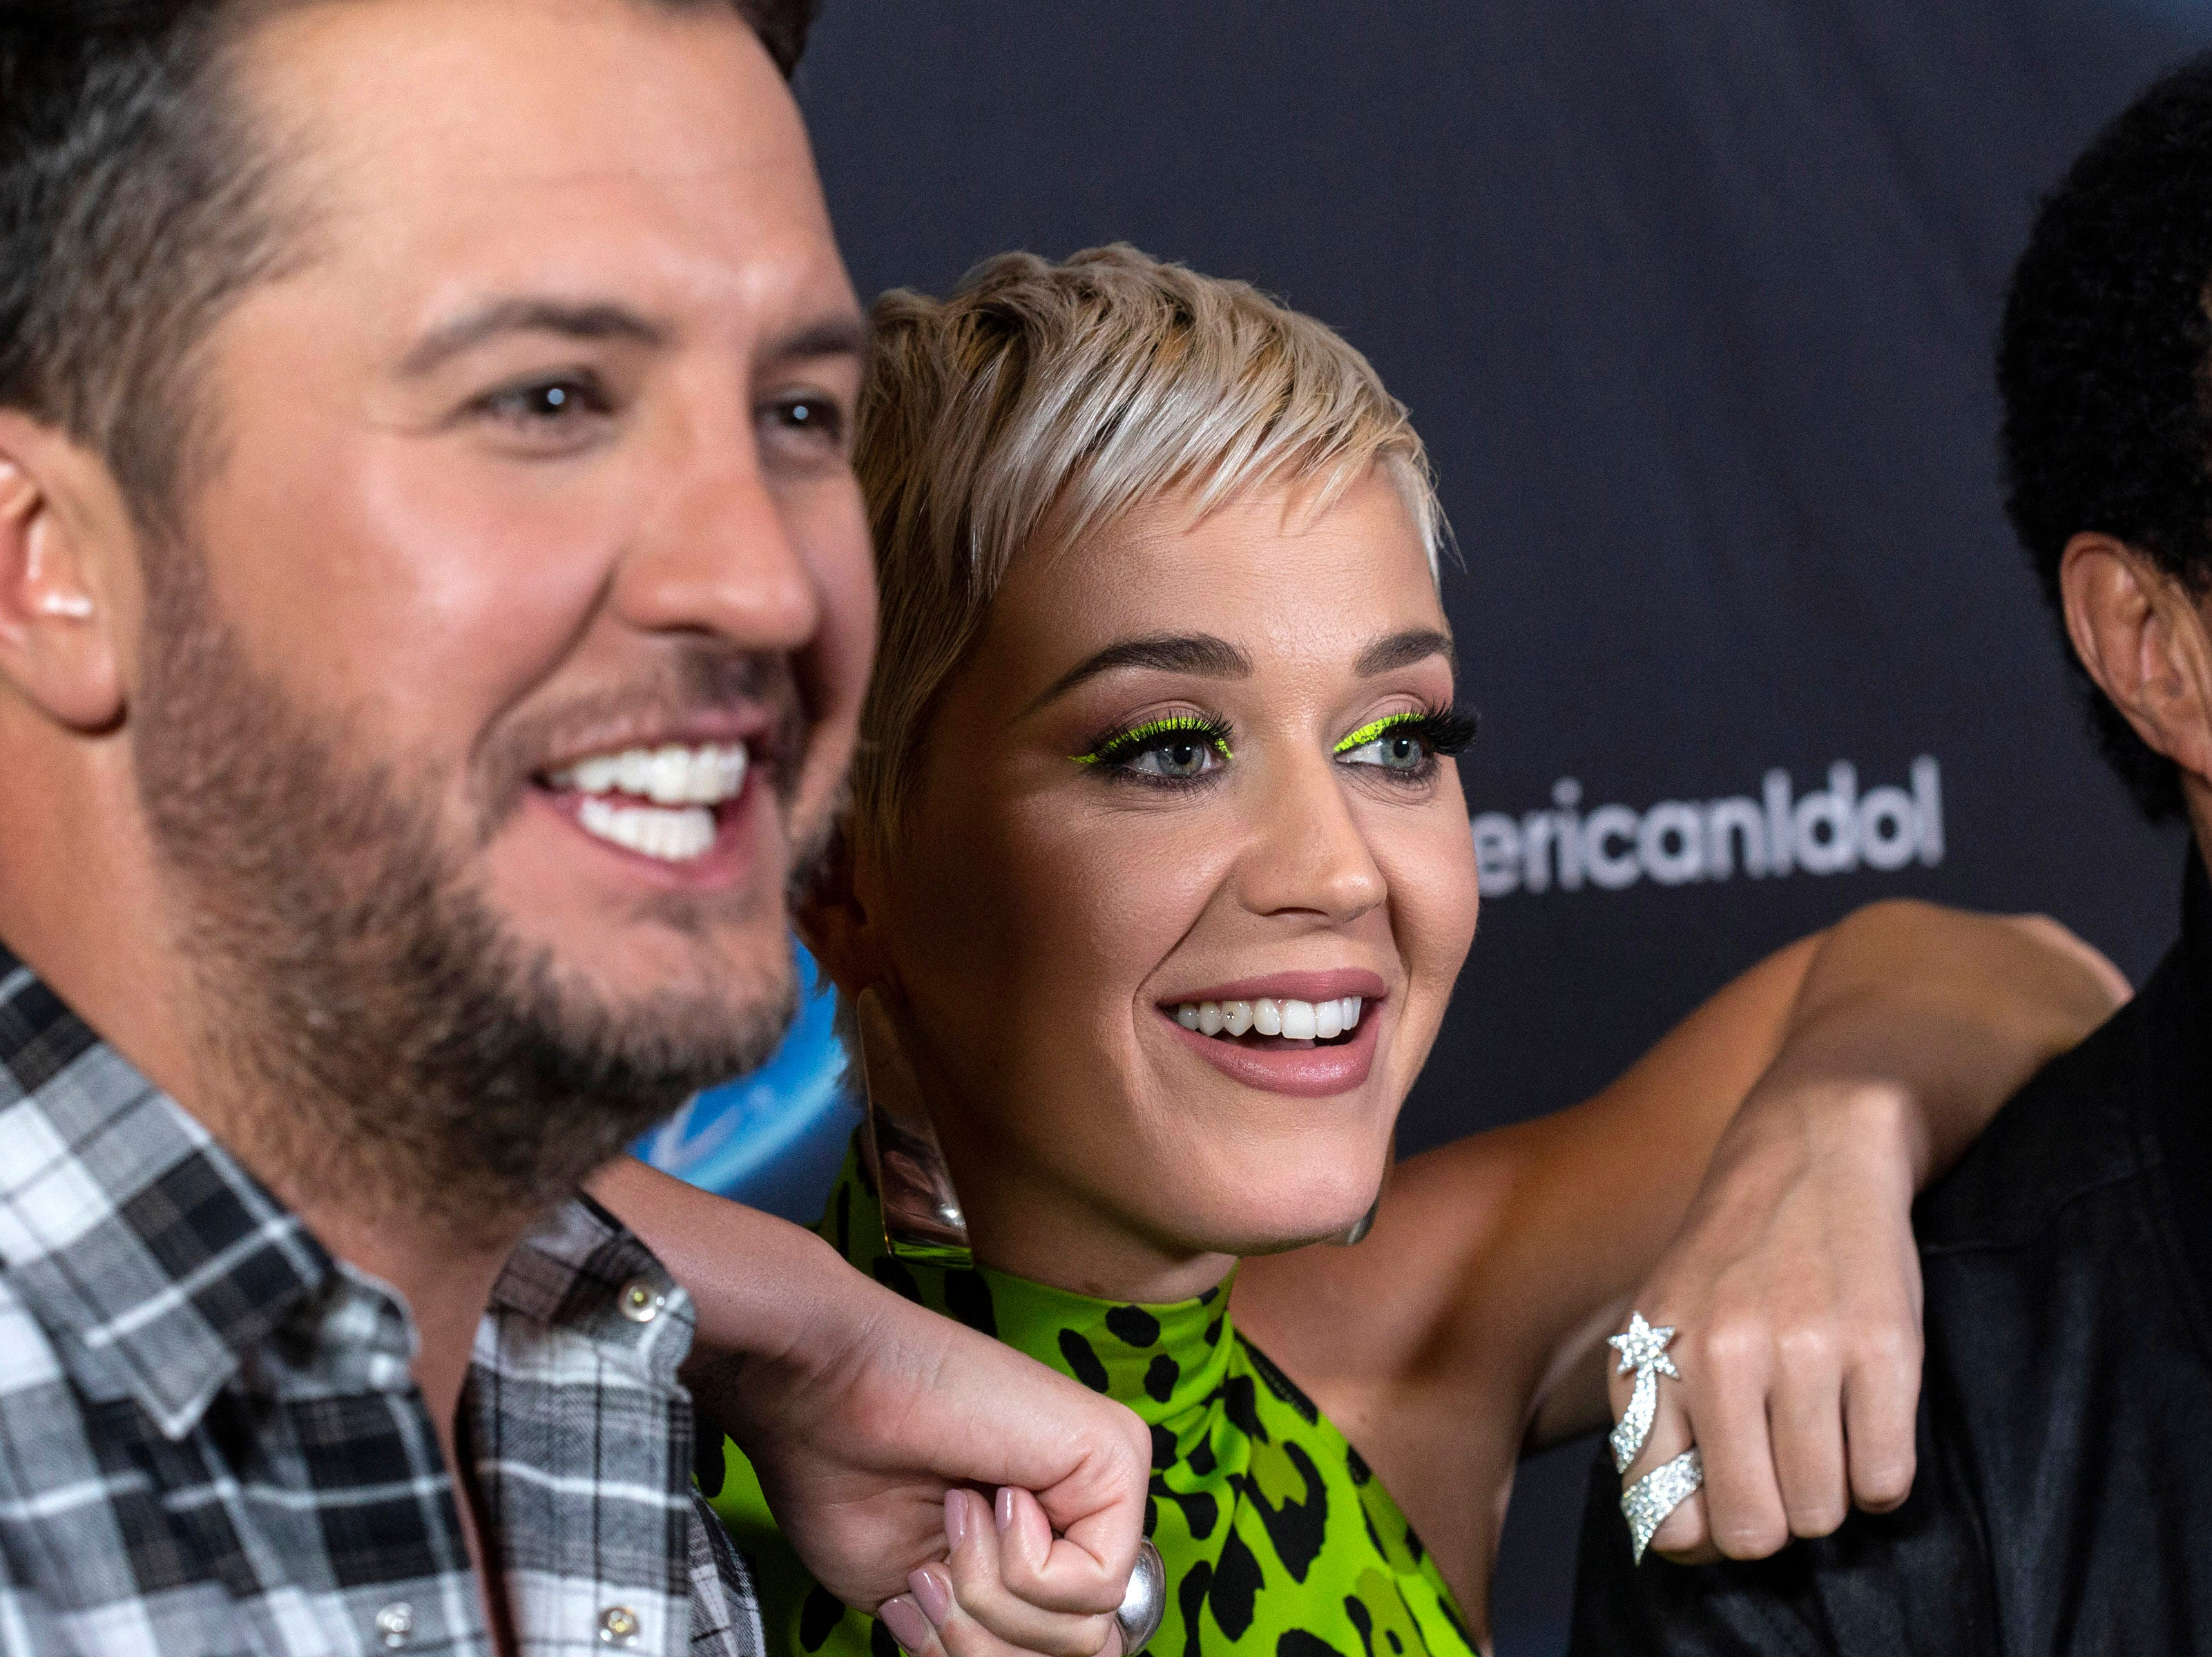 American Idol judges Luke Bryan, Katy Perry and Lionel Richie took a break at the Ali Center during Tuesday night auditions to speak to the media in Louisville, Ky. 10/23/18